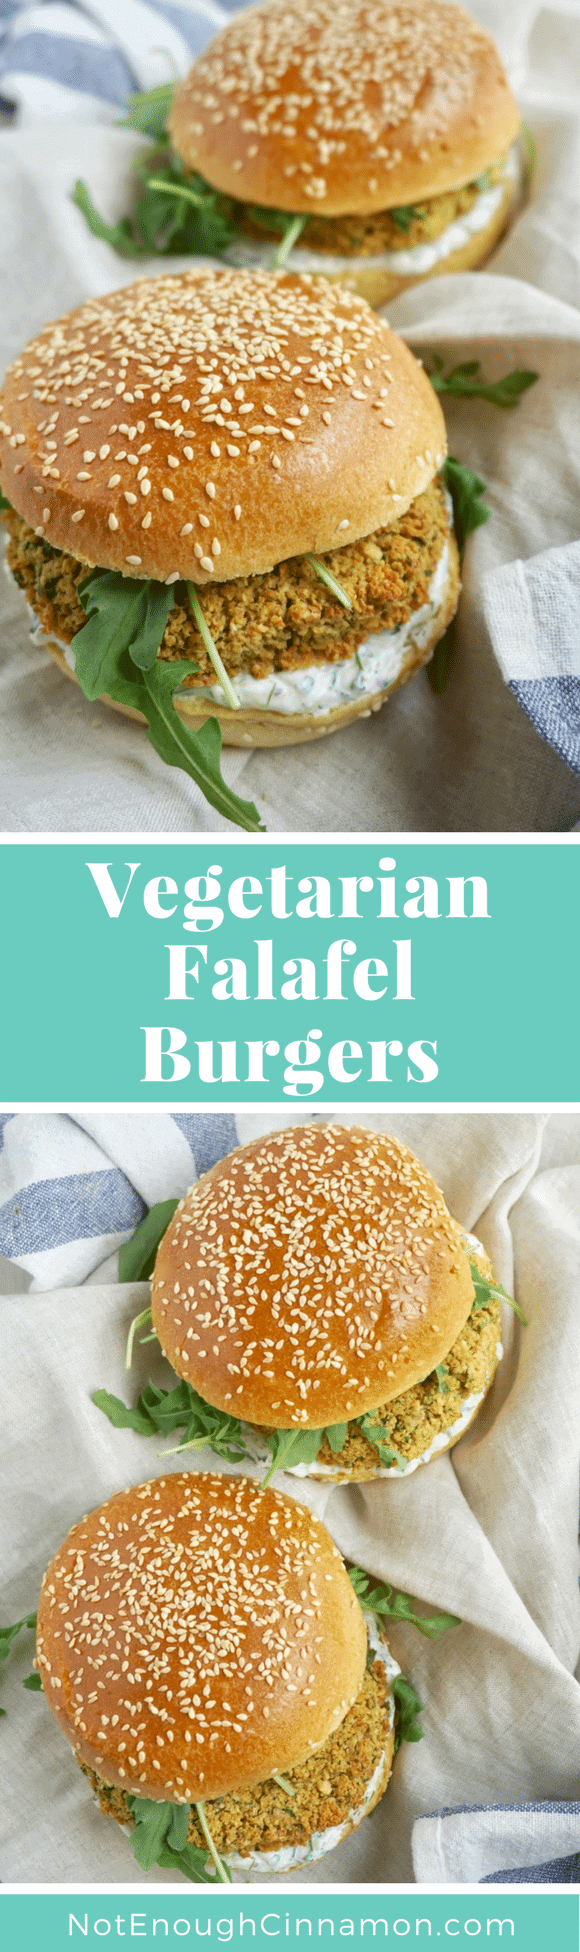 Vegetarian Falafel Burgers |These Baked Falafel Burgers with chickpea patties, arugula, and tzatziki are a great vegetarian healthy burger option and a nice change from classic falafel wraps!  #vegetarianrecipes,#falafel, #veggieburger, #burgerrecipes